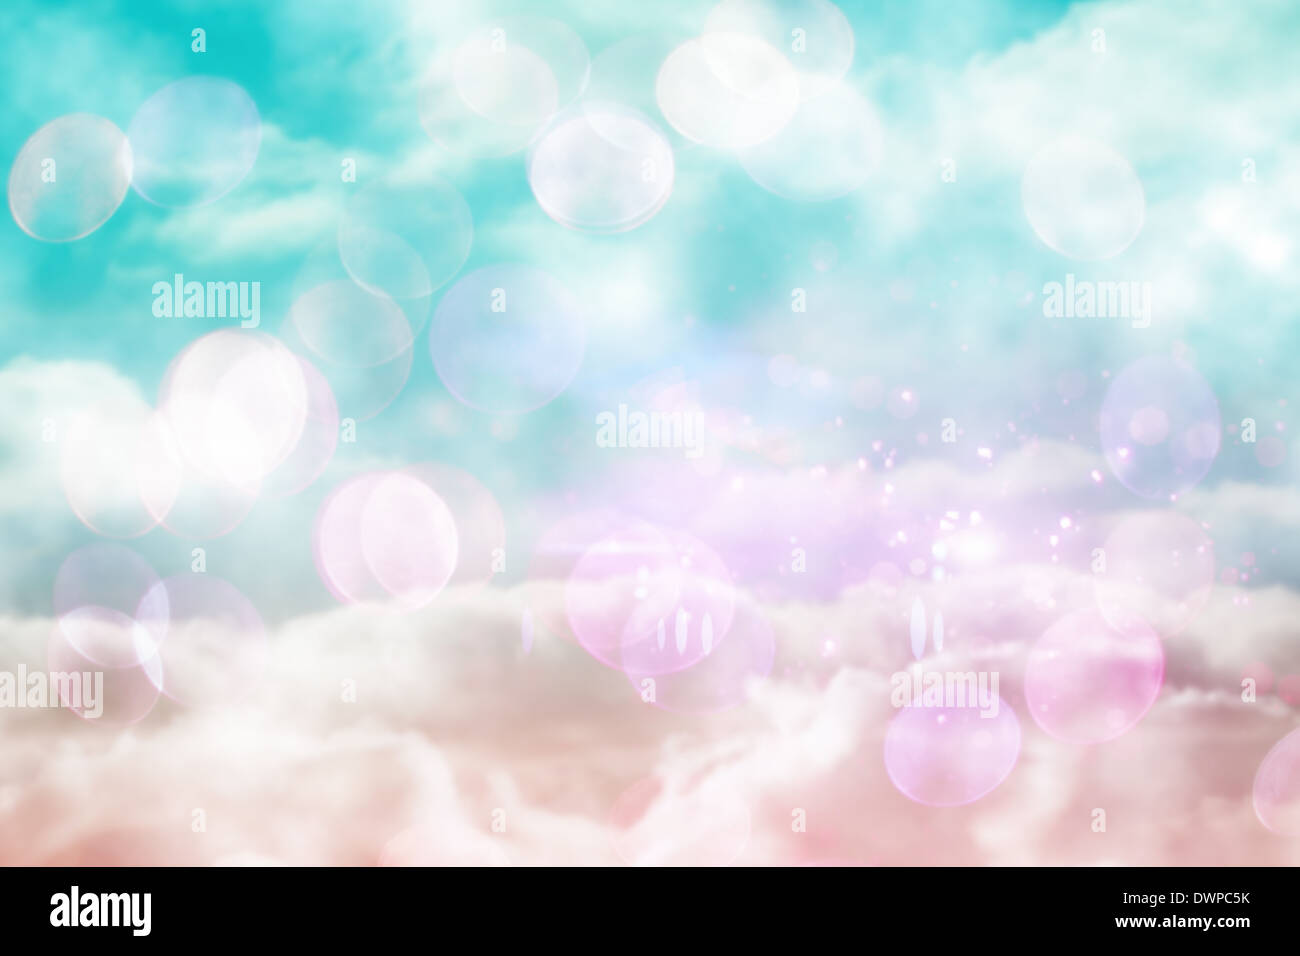 Pink and blue girly design - Stock Image